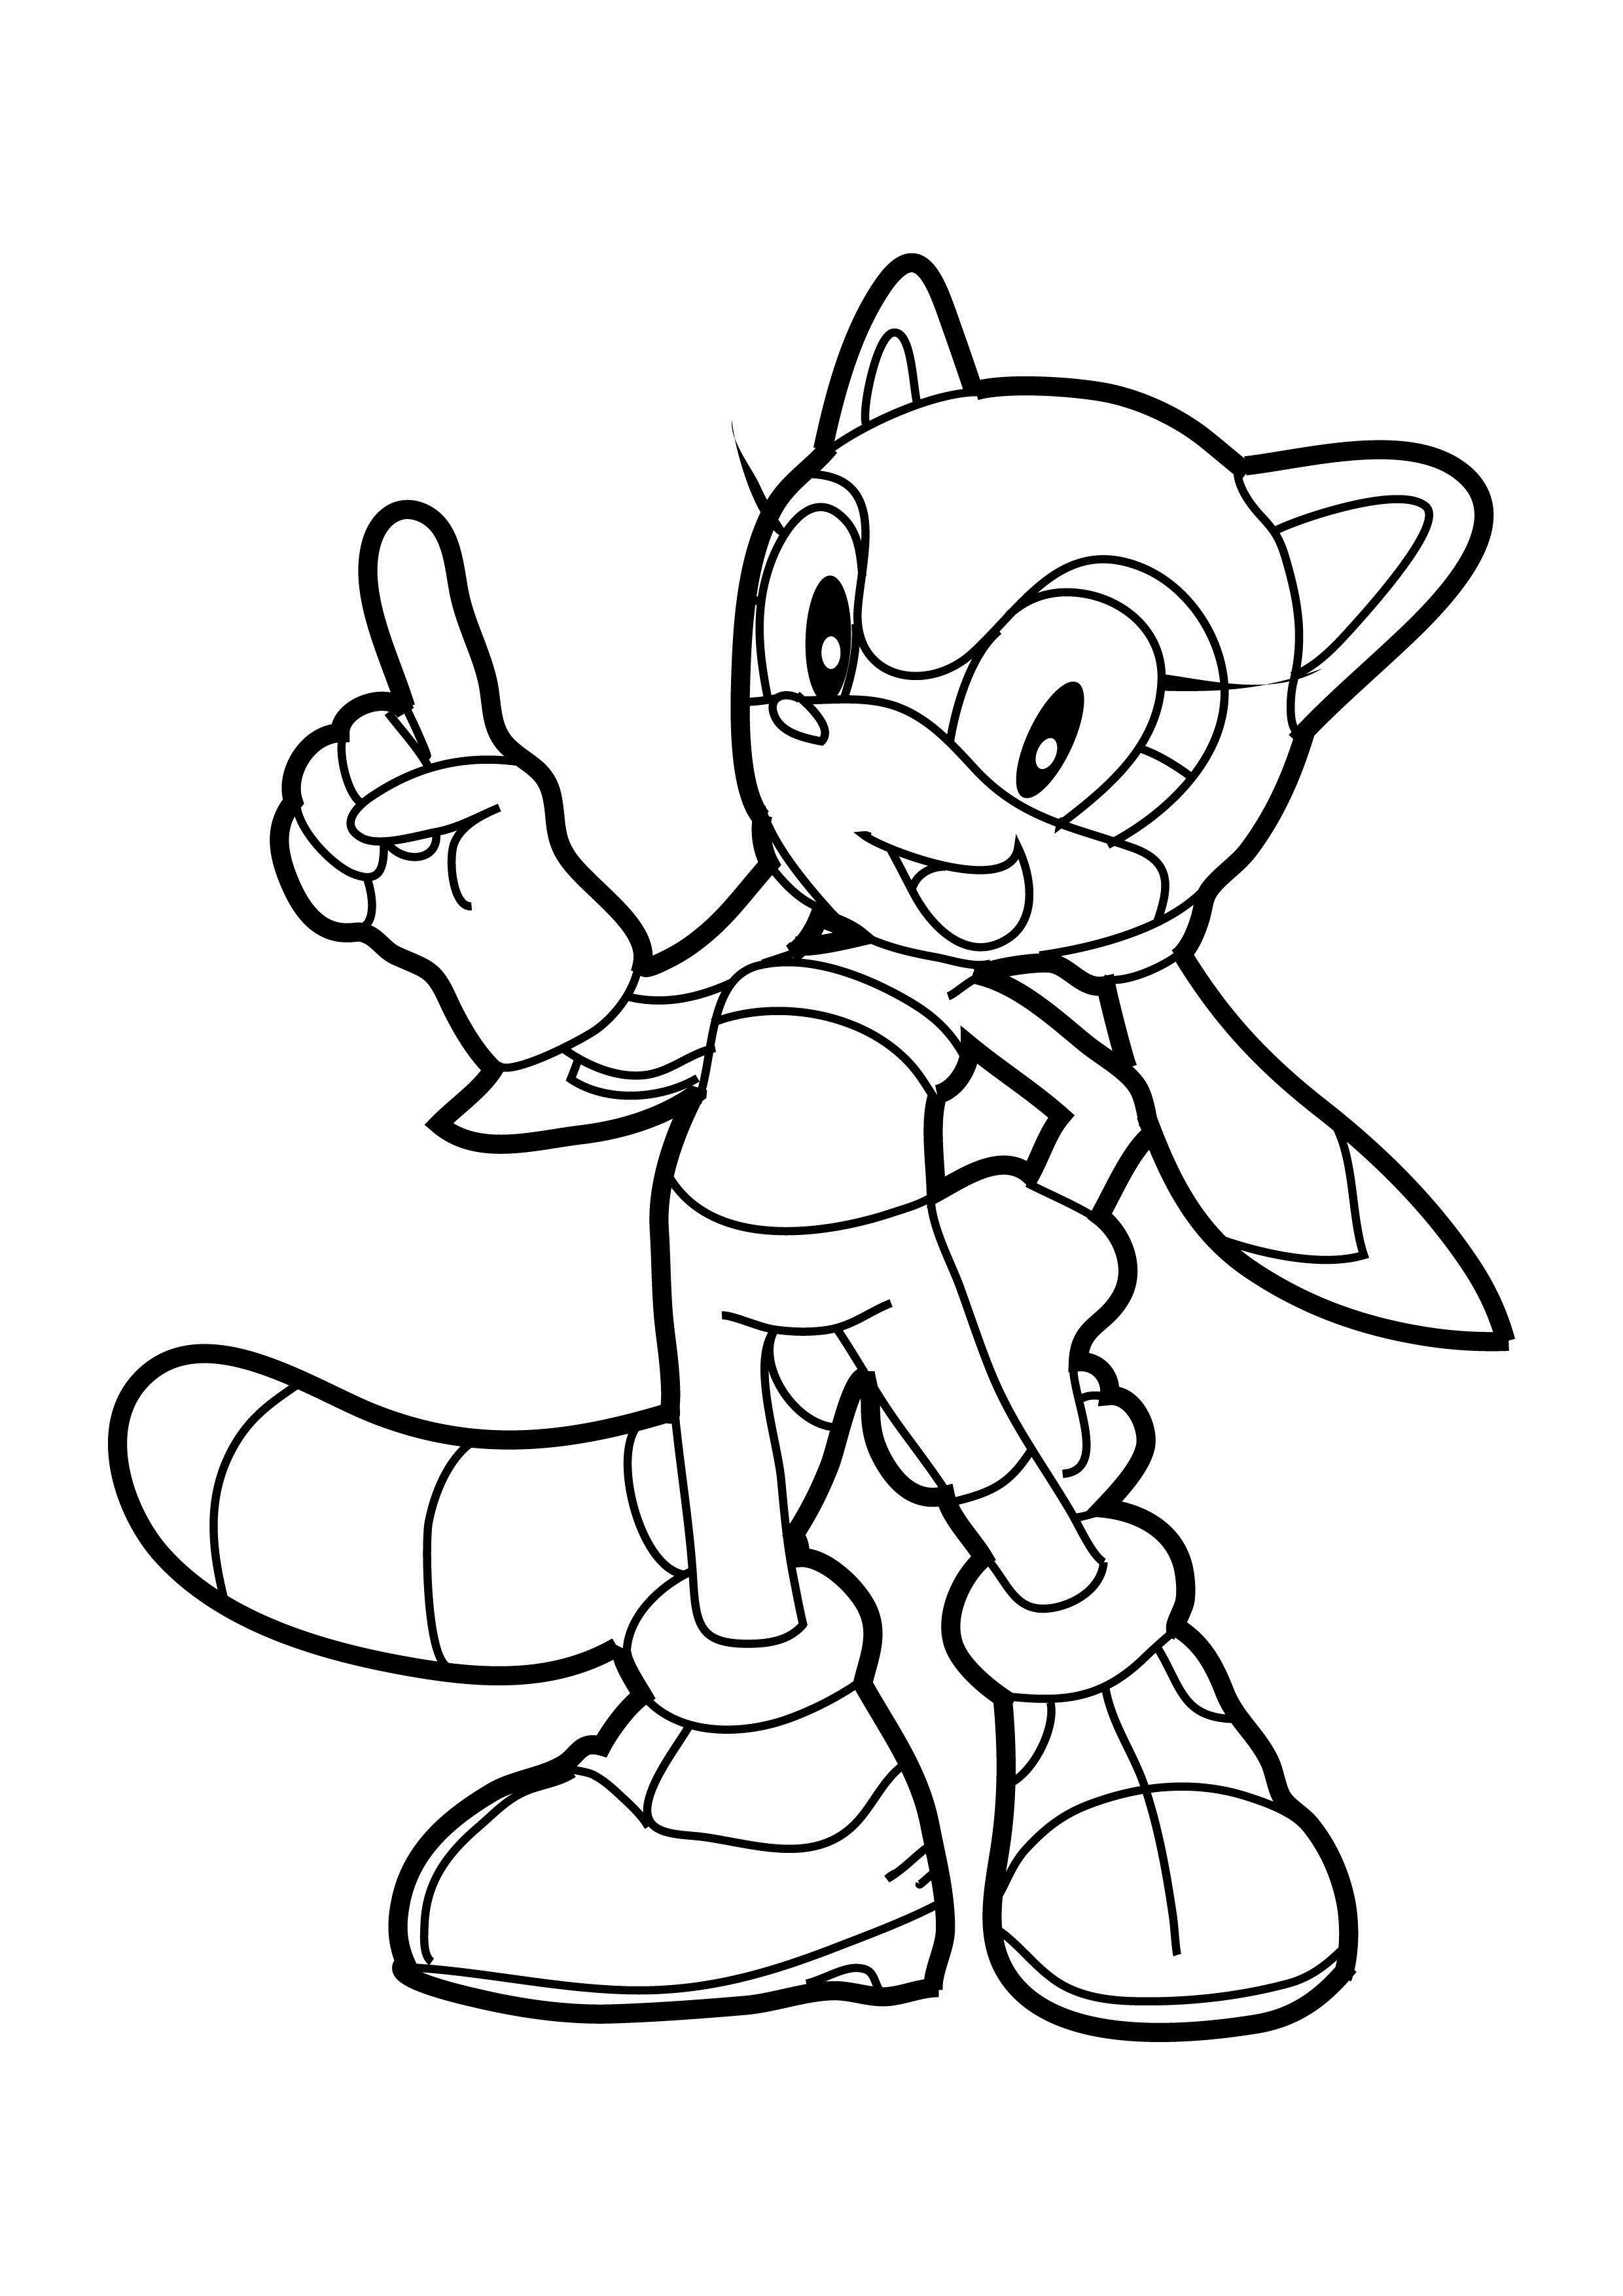 2480x3508 Sonic Characters Coloring Pages For Kids Lovely Free Printable